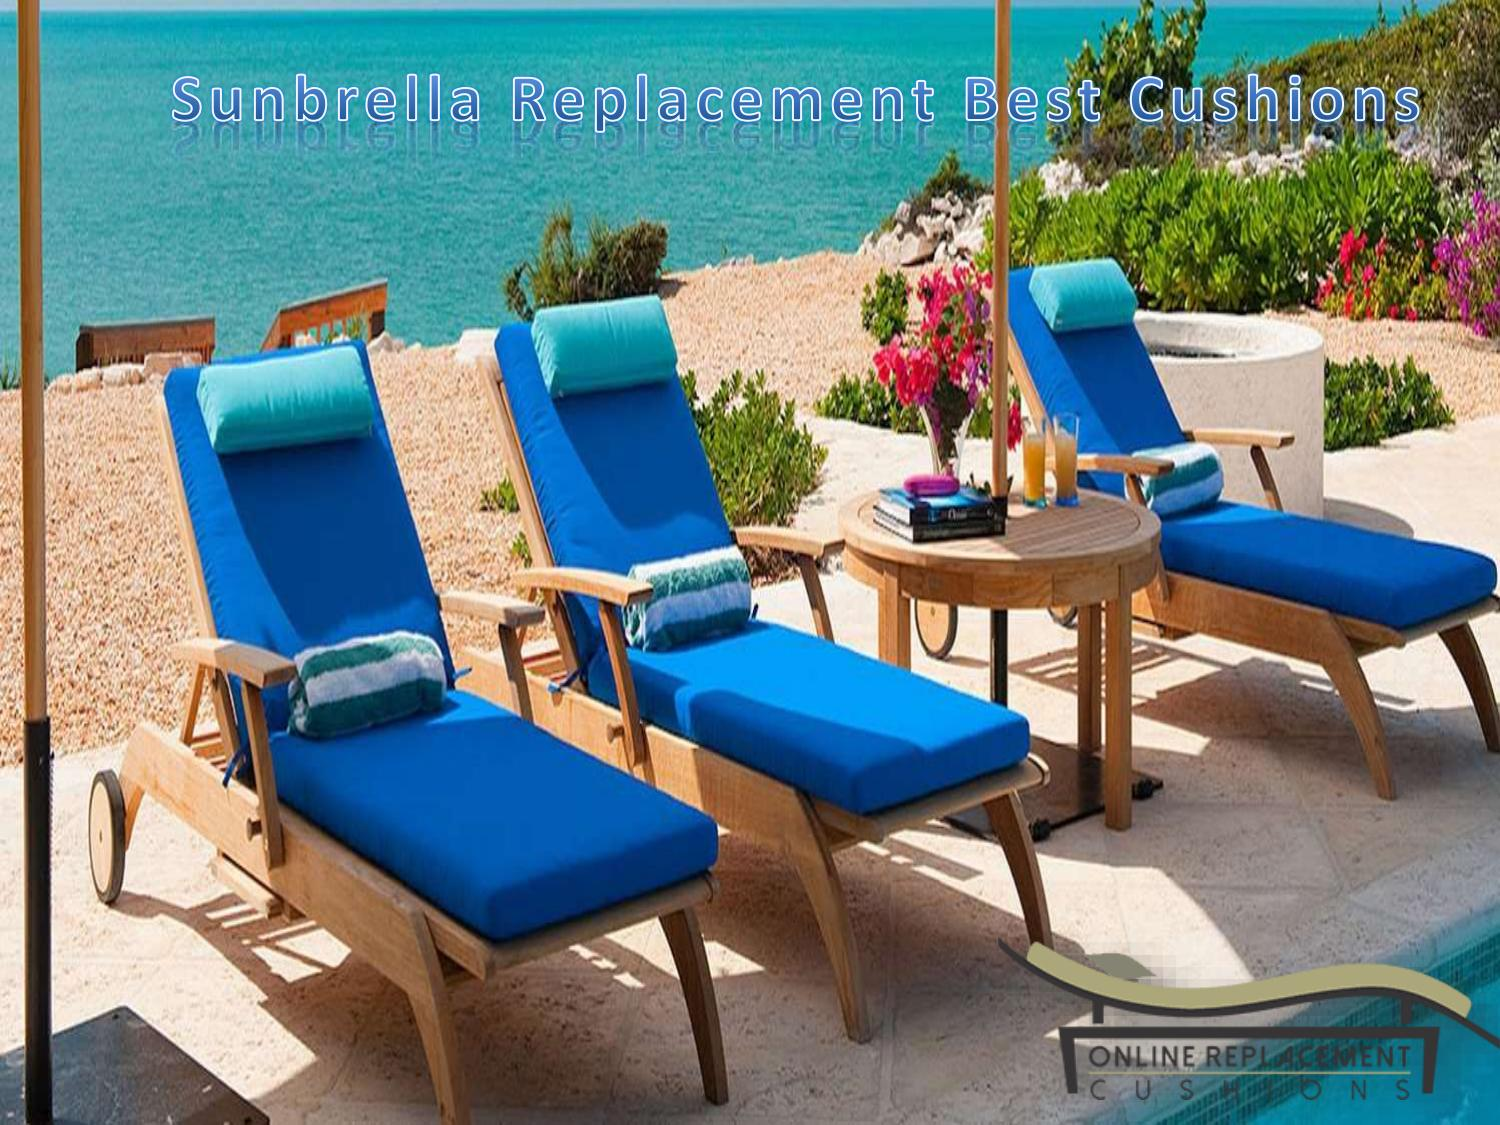 Outdoor Cushions Available From Bunnings Warehouse By Shirleybrown485 Issuu